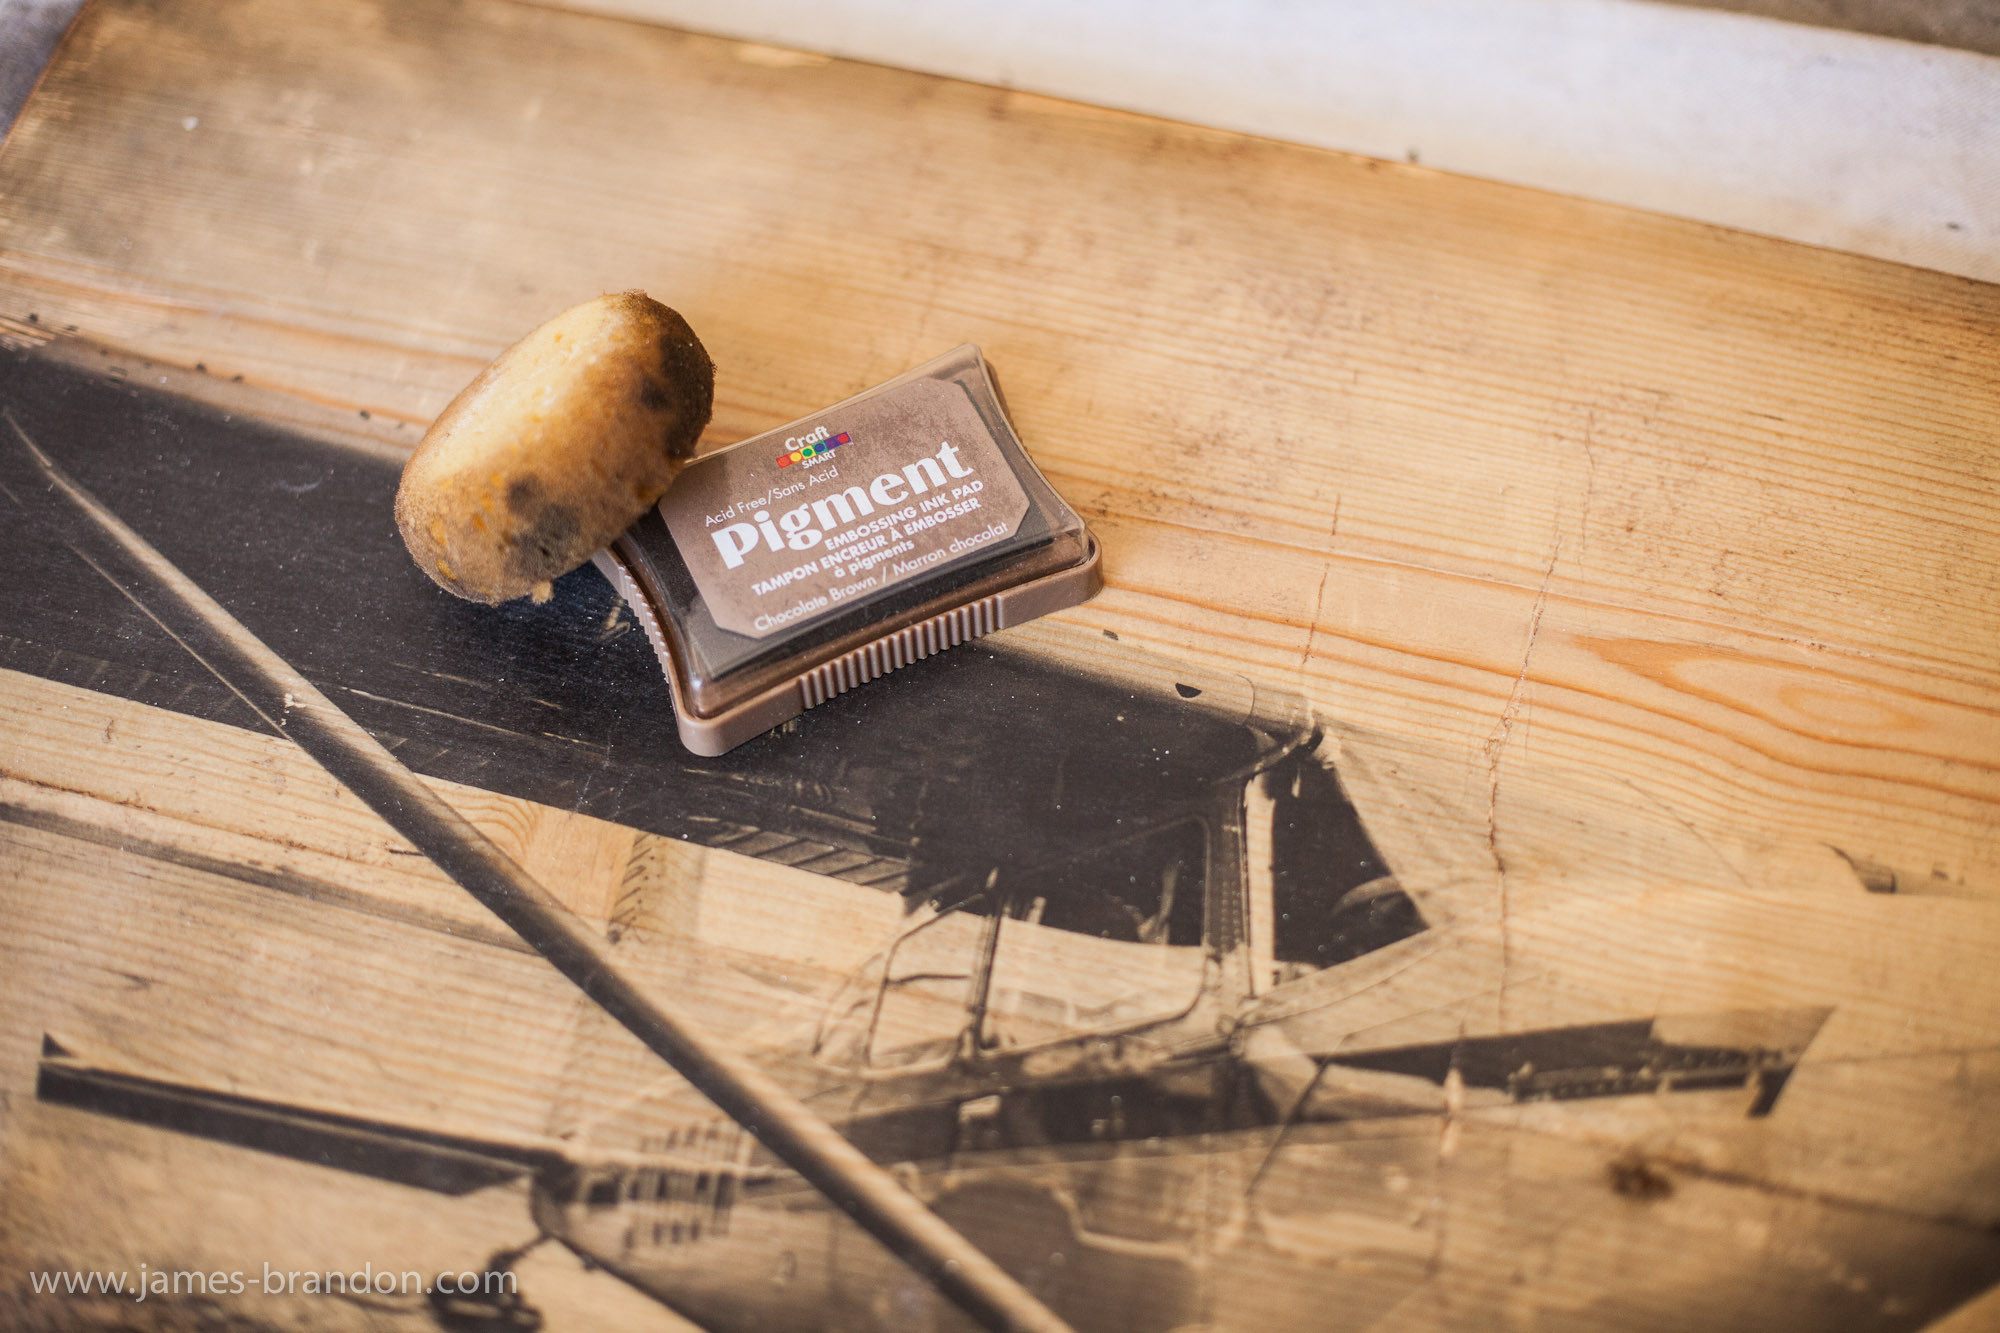 Prints On Wood DIY  How To Transfer Prints To Wood An Awesome graphy DIY